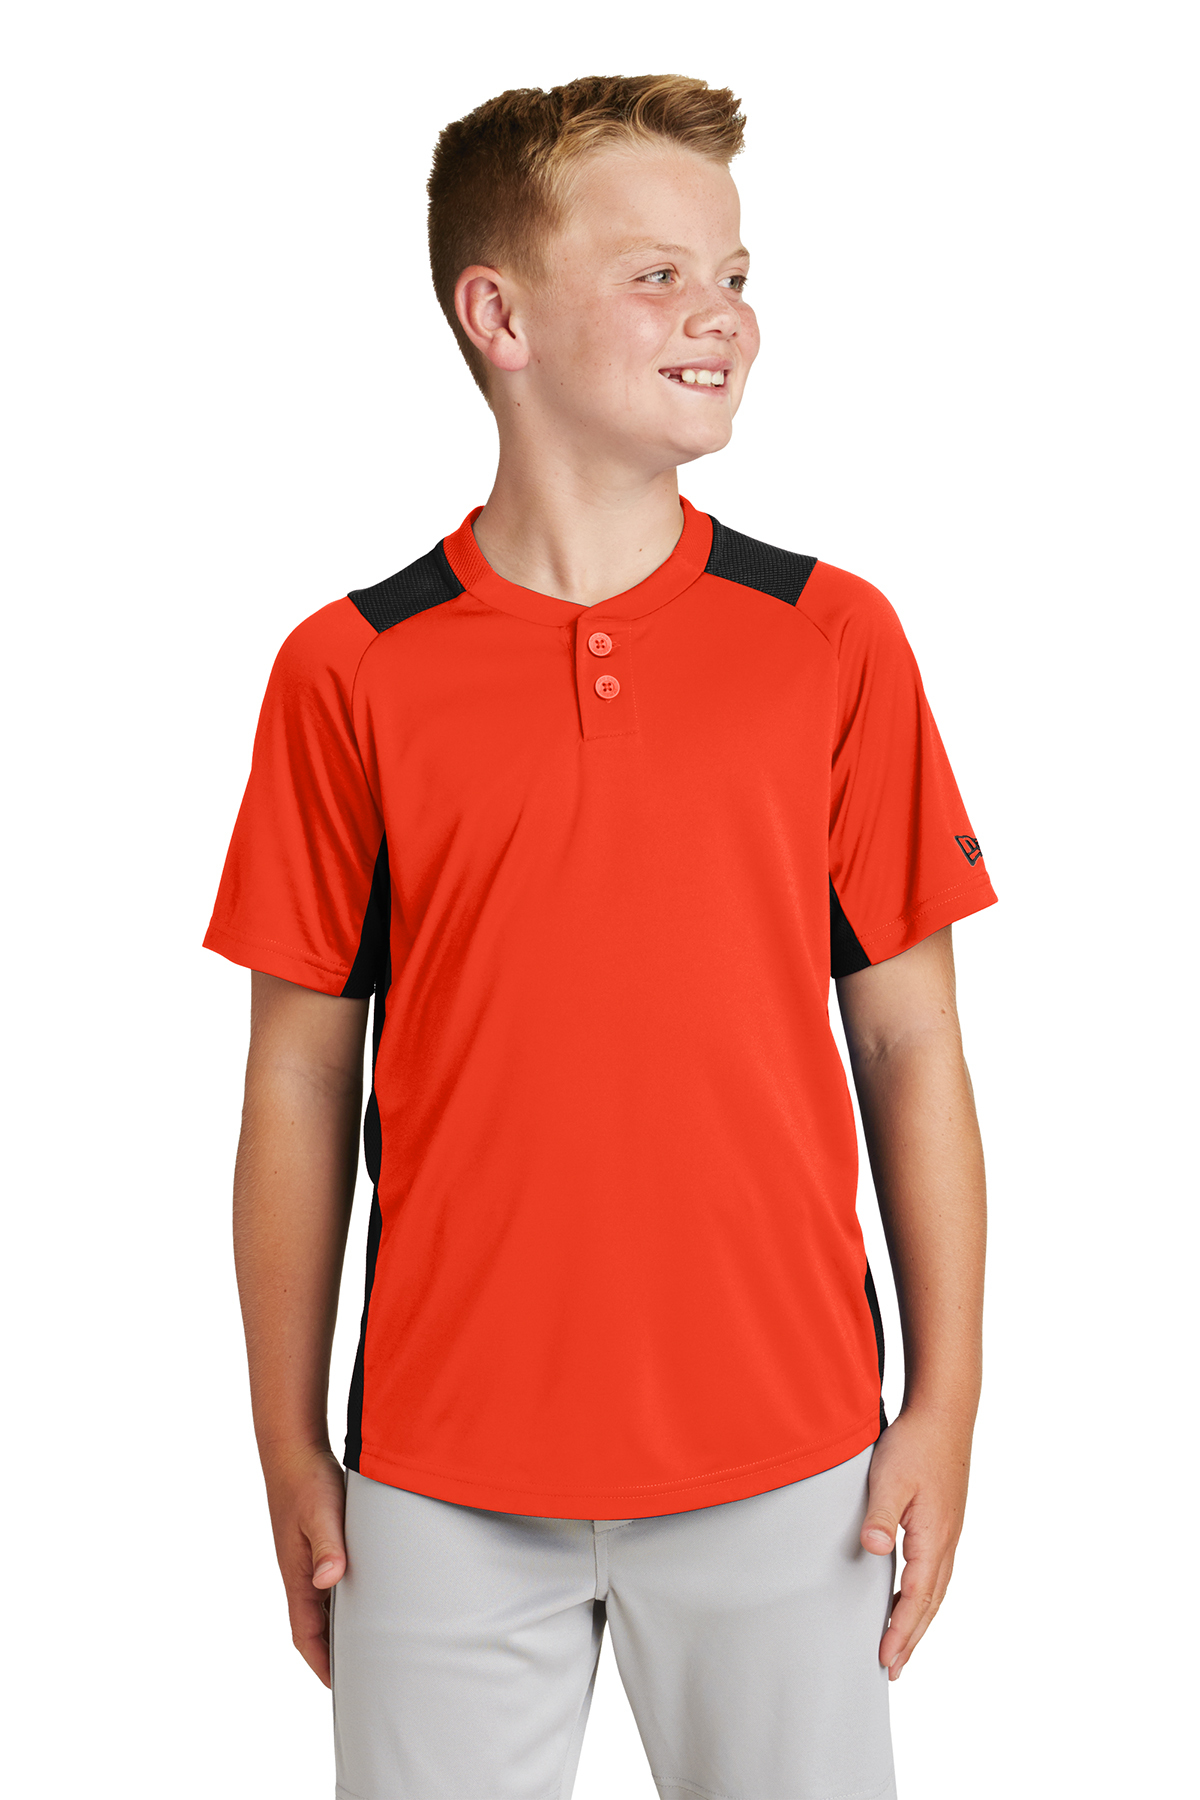 New Era YNEA221 - Youth Diamond Era 2-Button Jersey